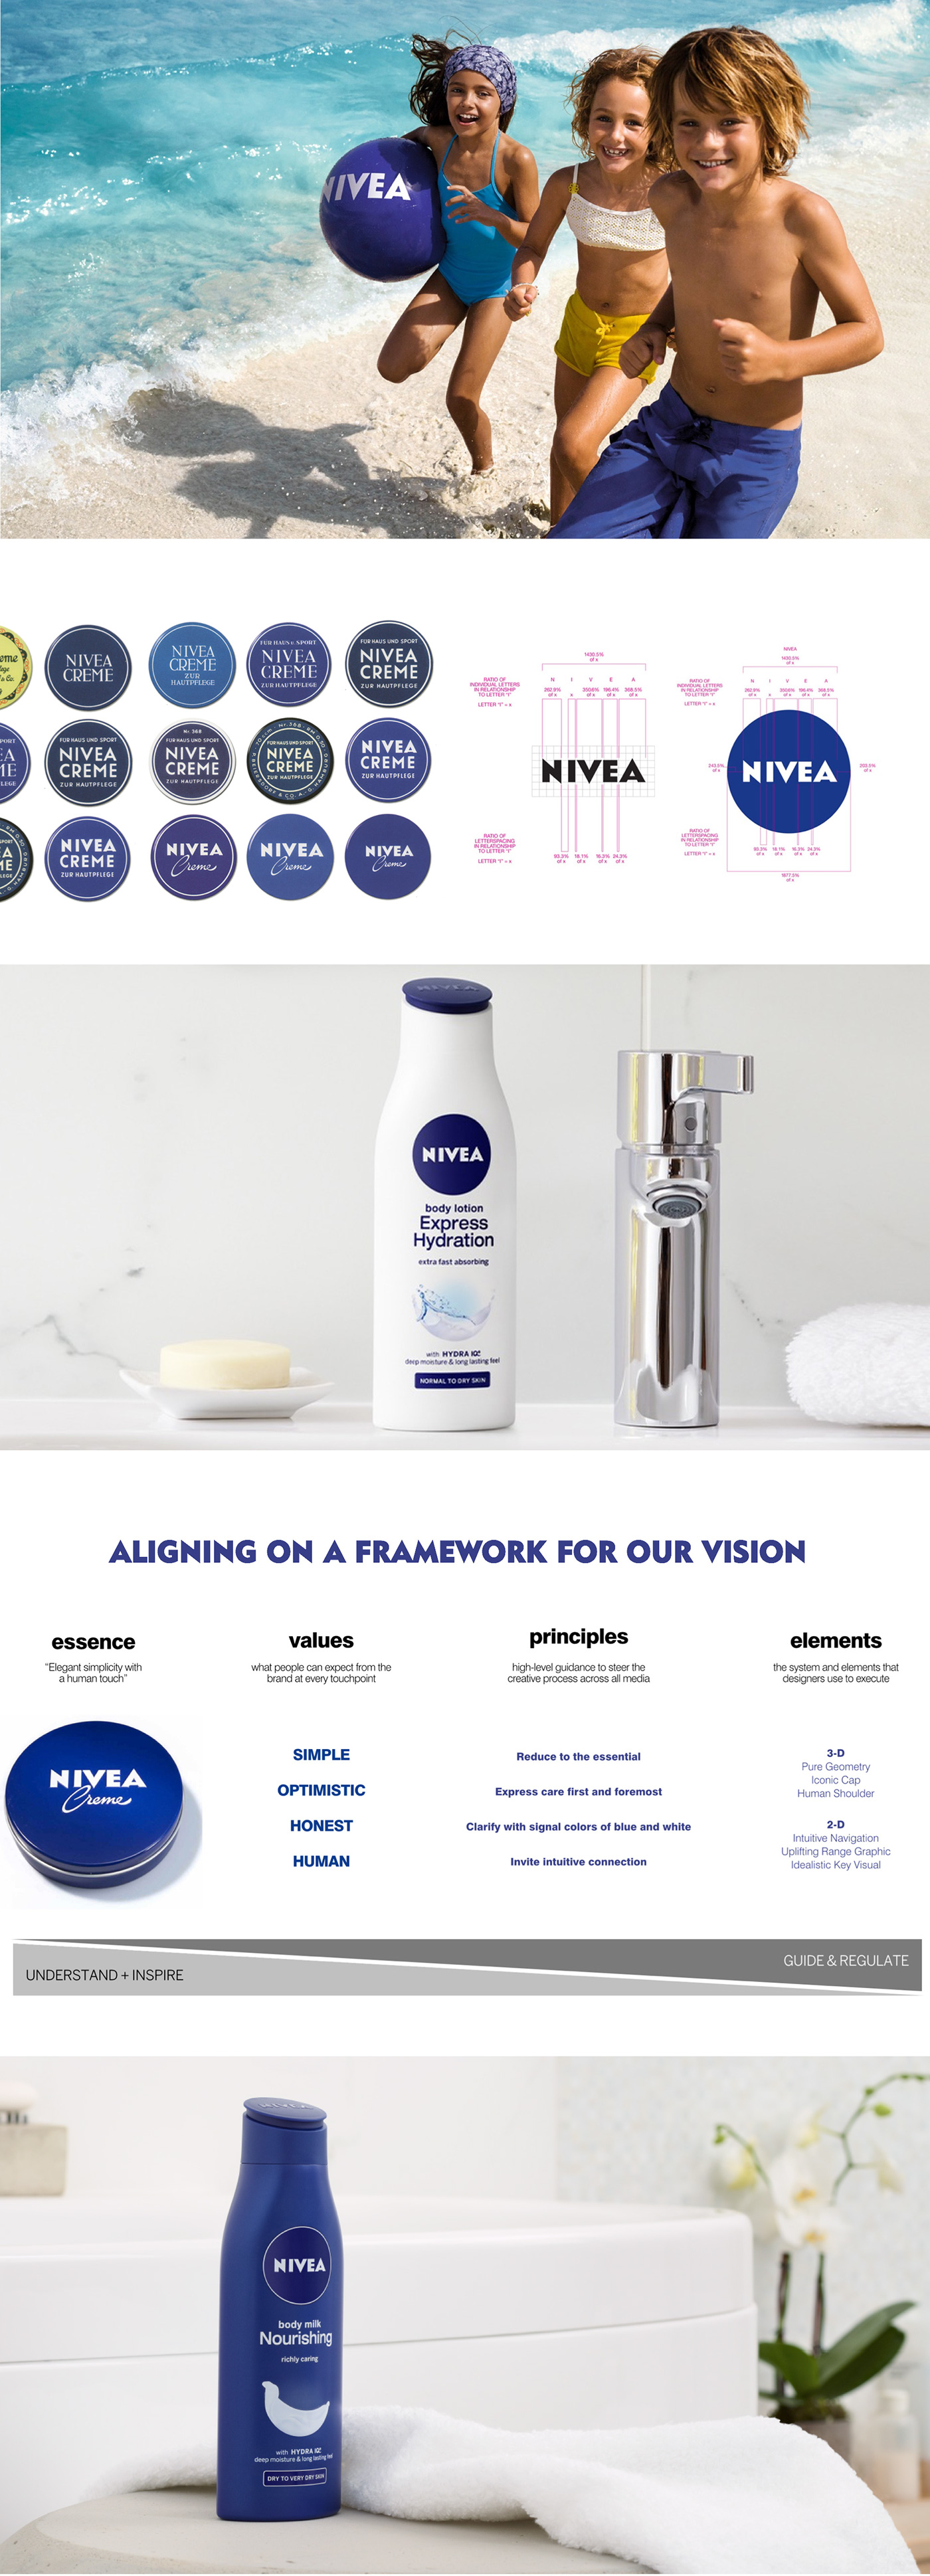 nivea brand management Brand building strategy for nivea a strategic brand management project brand inventory: history, brand elements, marketing programs, secondary association brand exploratory: qualitative research, knowledge structure, cbbe pyramid, conclusion imc plan: determine the communications objectives designing a message message content message structure.